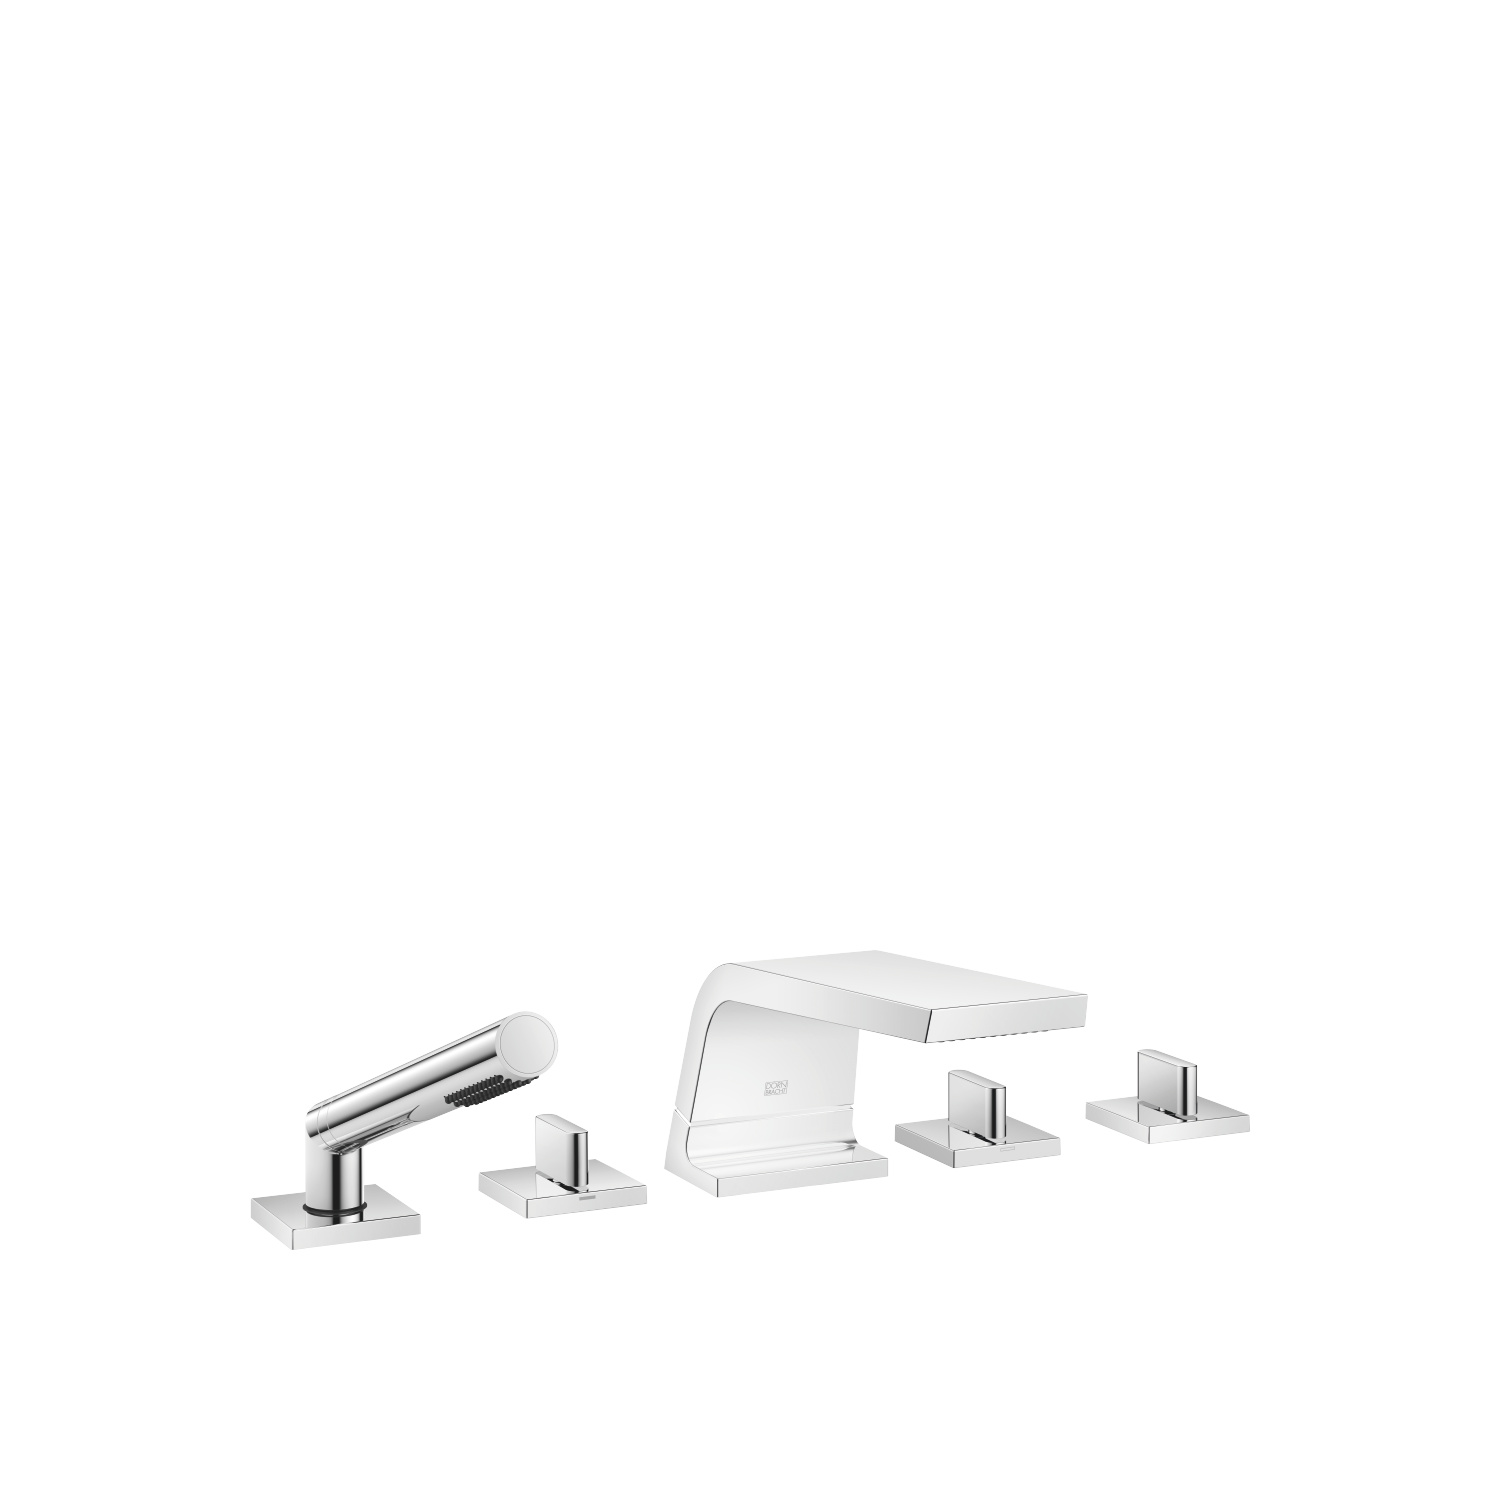 Five hole tub set for deck-mounted tub installation with diverter - polished chrome - 13 612 705-00 + 27 702 980-00 + 20 000 705-00 + 20 000 706-00 + 29 126 705-00